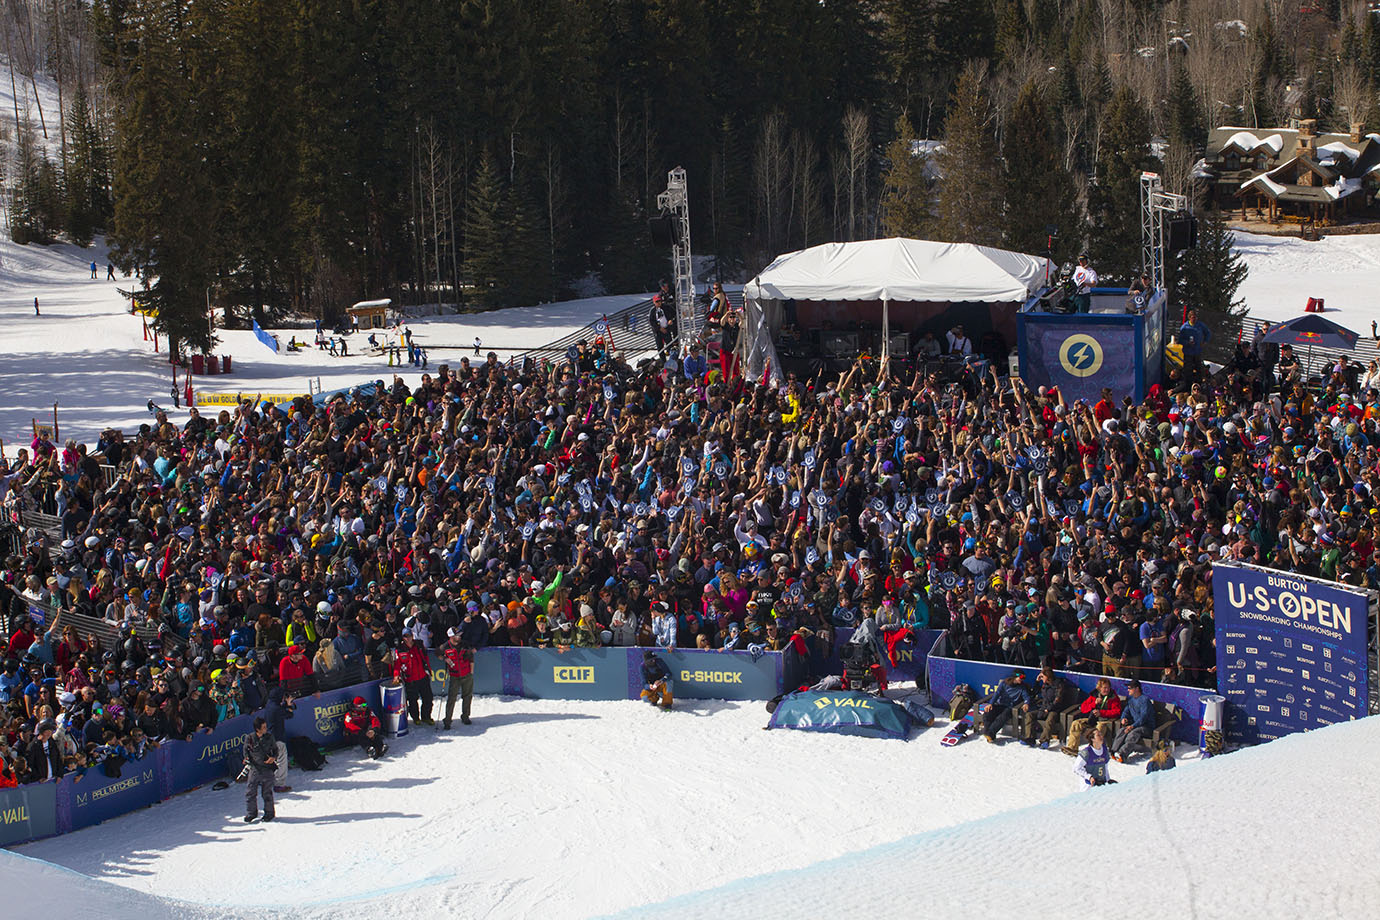 A large crowd gathers Friday afternoon to watch the men's Slopestyle final at the 2016 Burton U.S. Open in Vail, Colo.